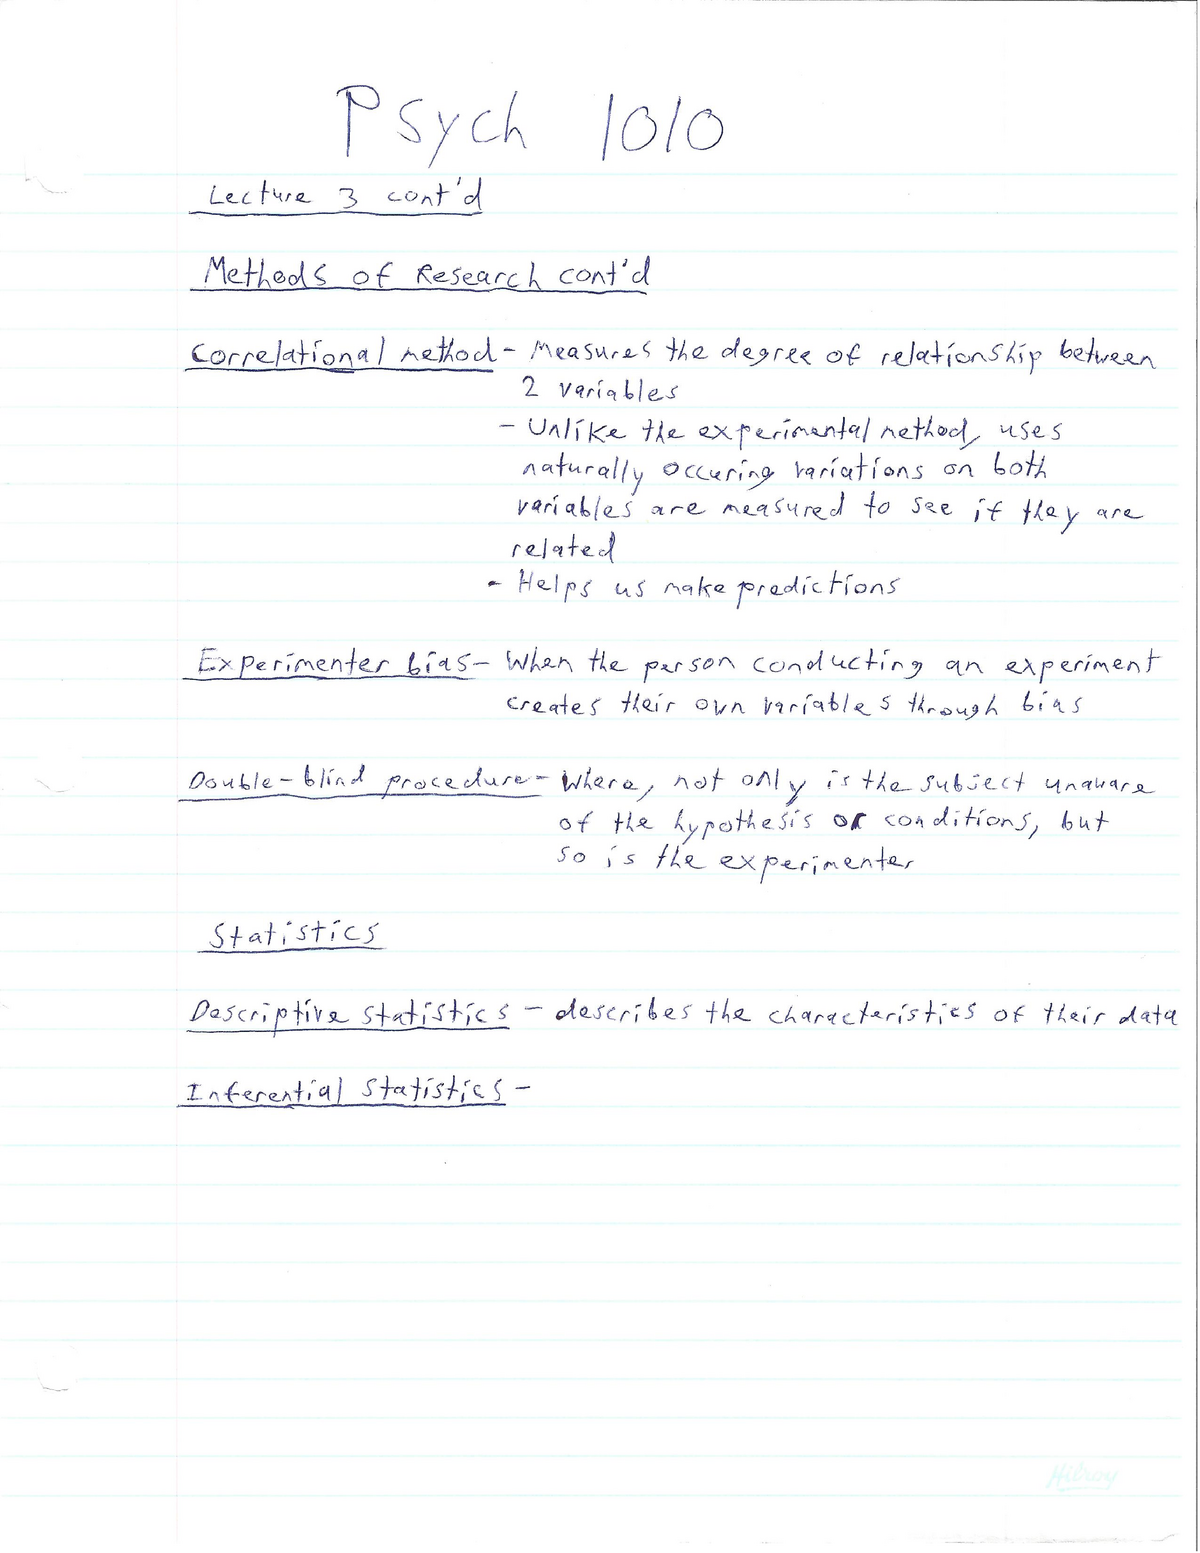 Full set of lecture notes for PSYC1010  Professor was